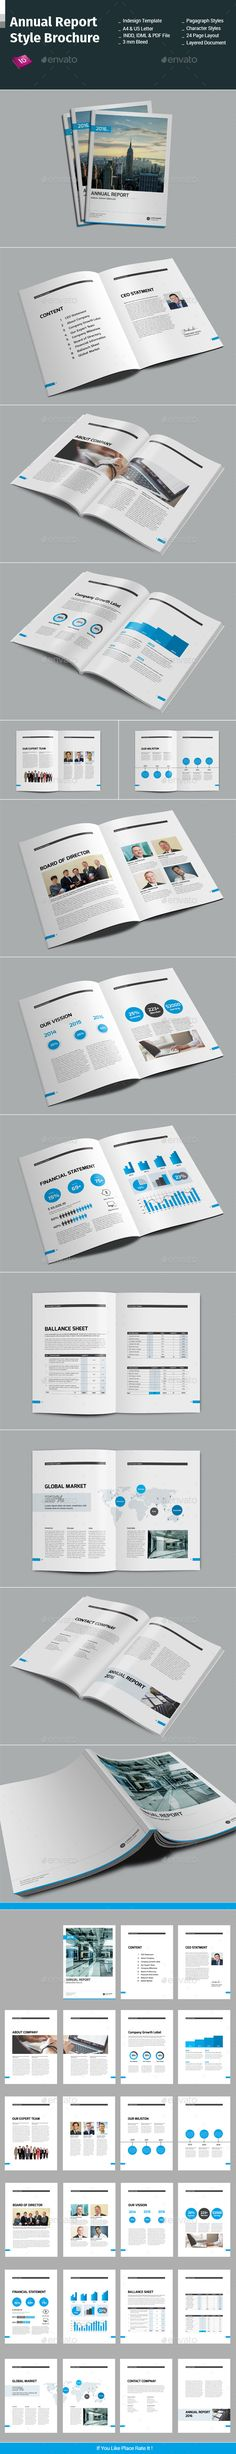 Annual Report Style Brochure Template InDesign INDD #design Download: http://graphicriver.net/item/annual-report-style-brochure-/14117921?ref=ksioks